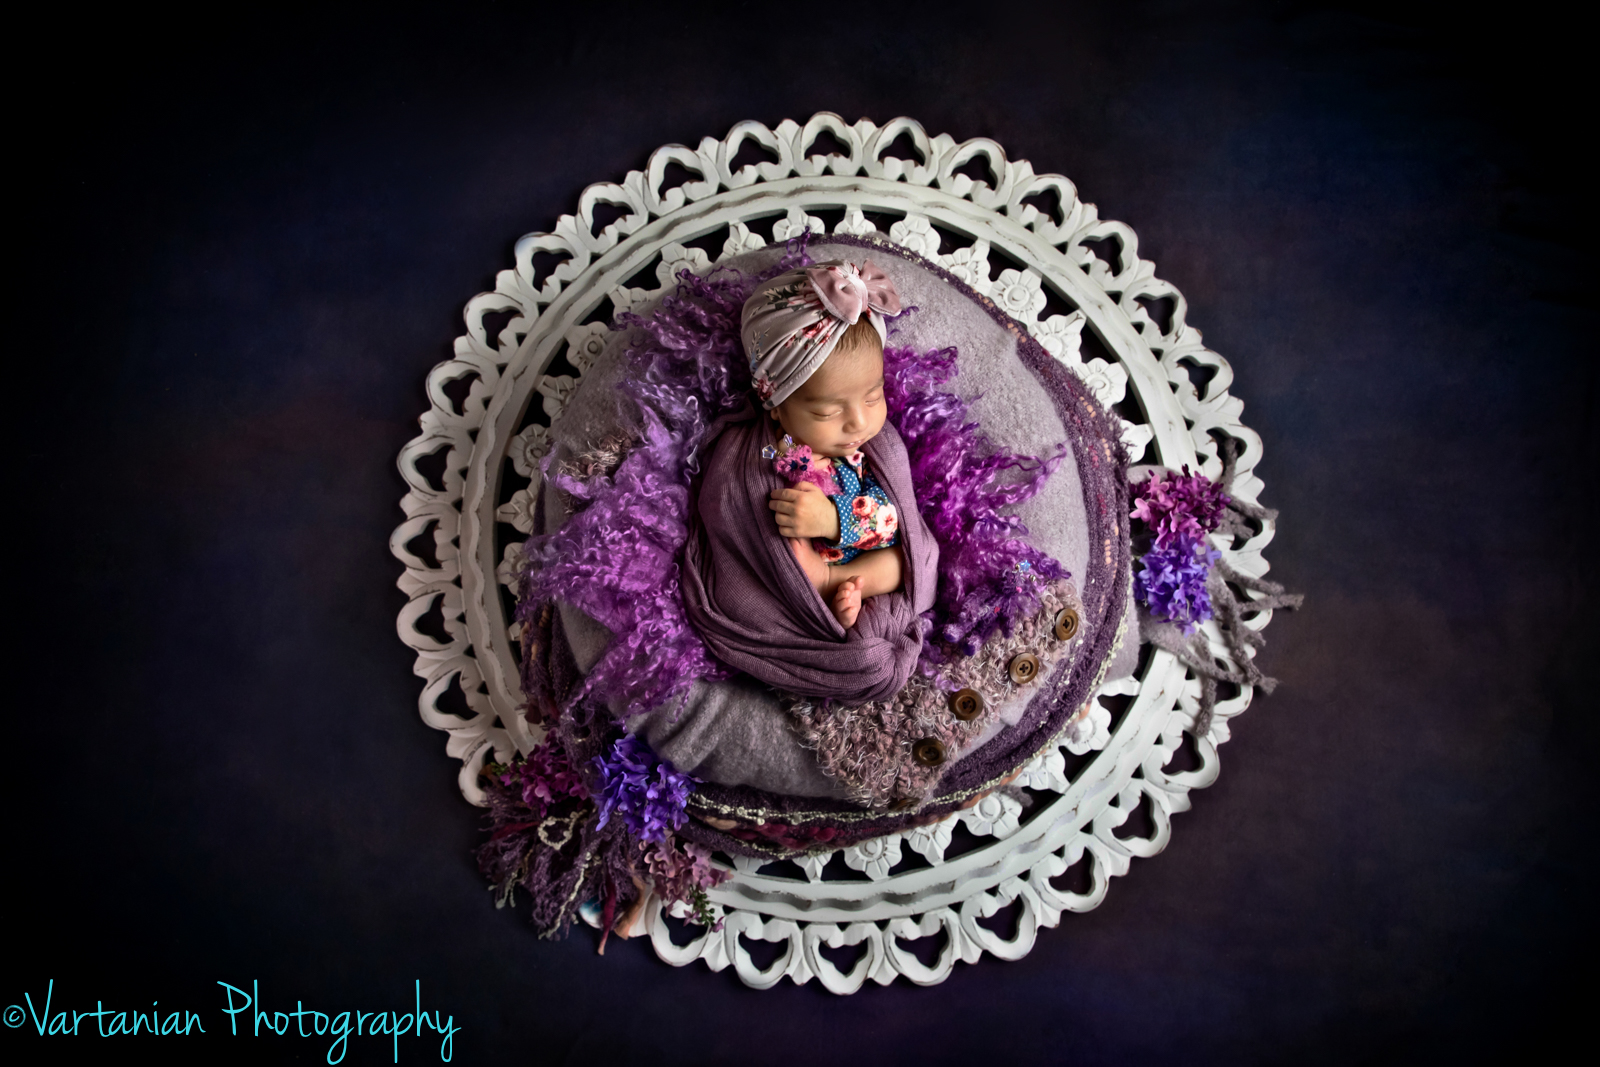 Newborn-photography-Vartanian-Photography-Northville-michigan-16.jpg